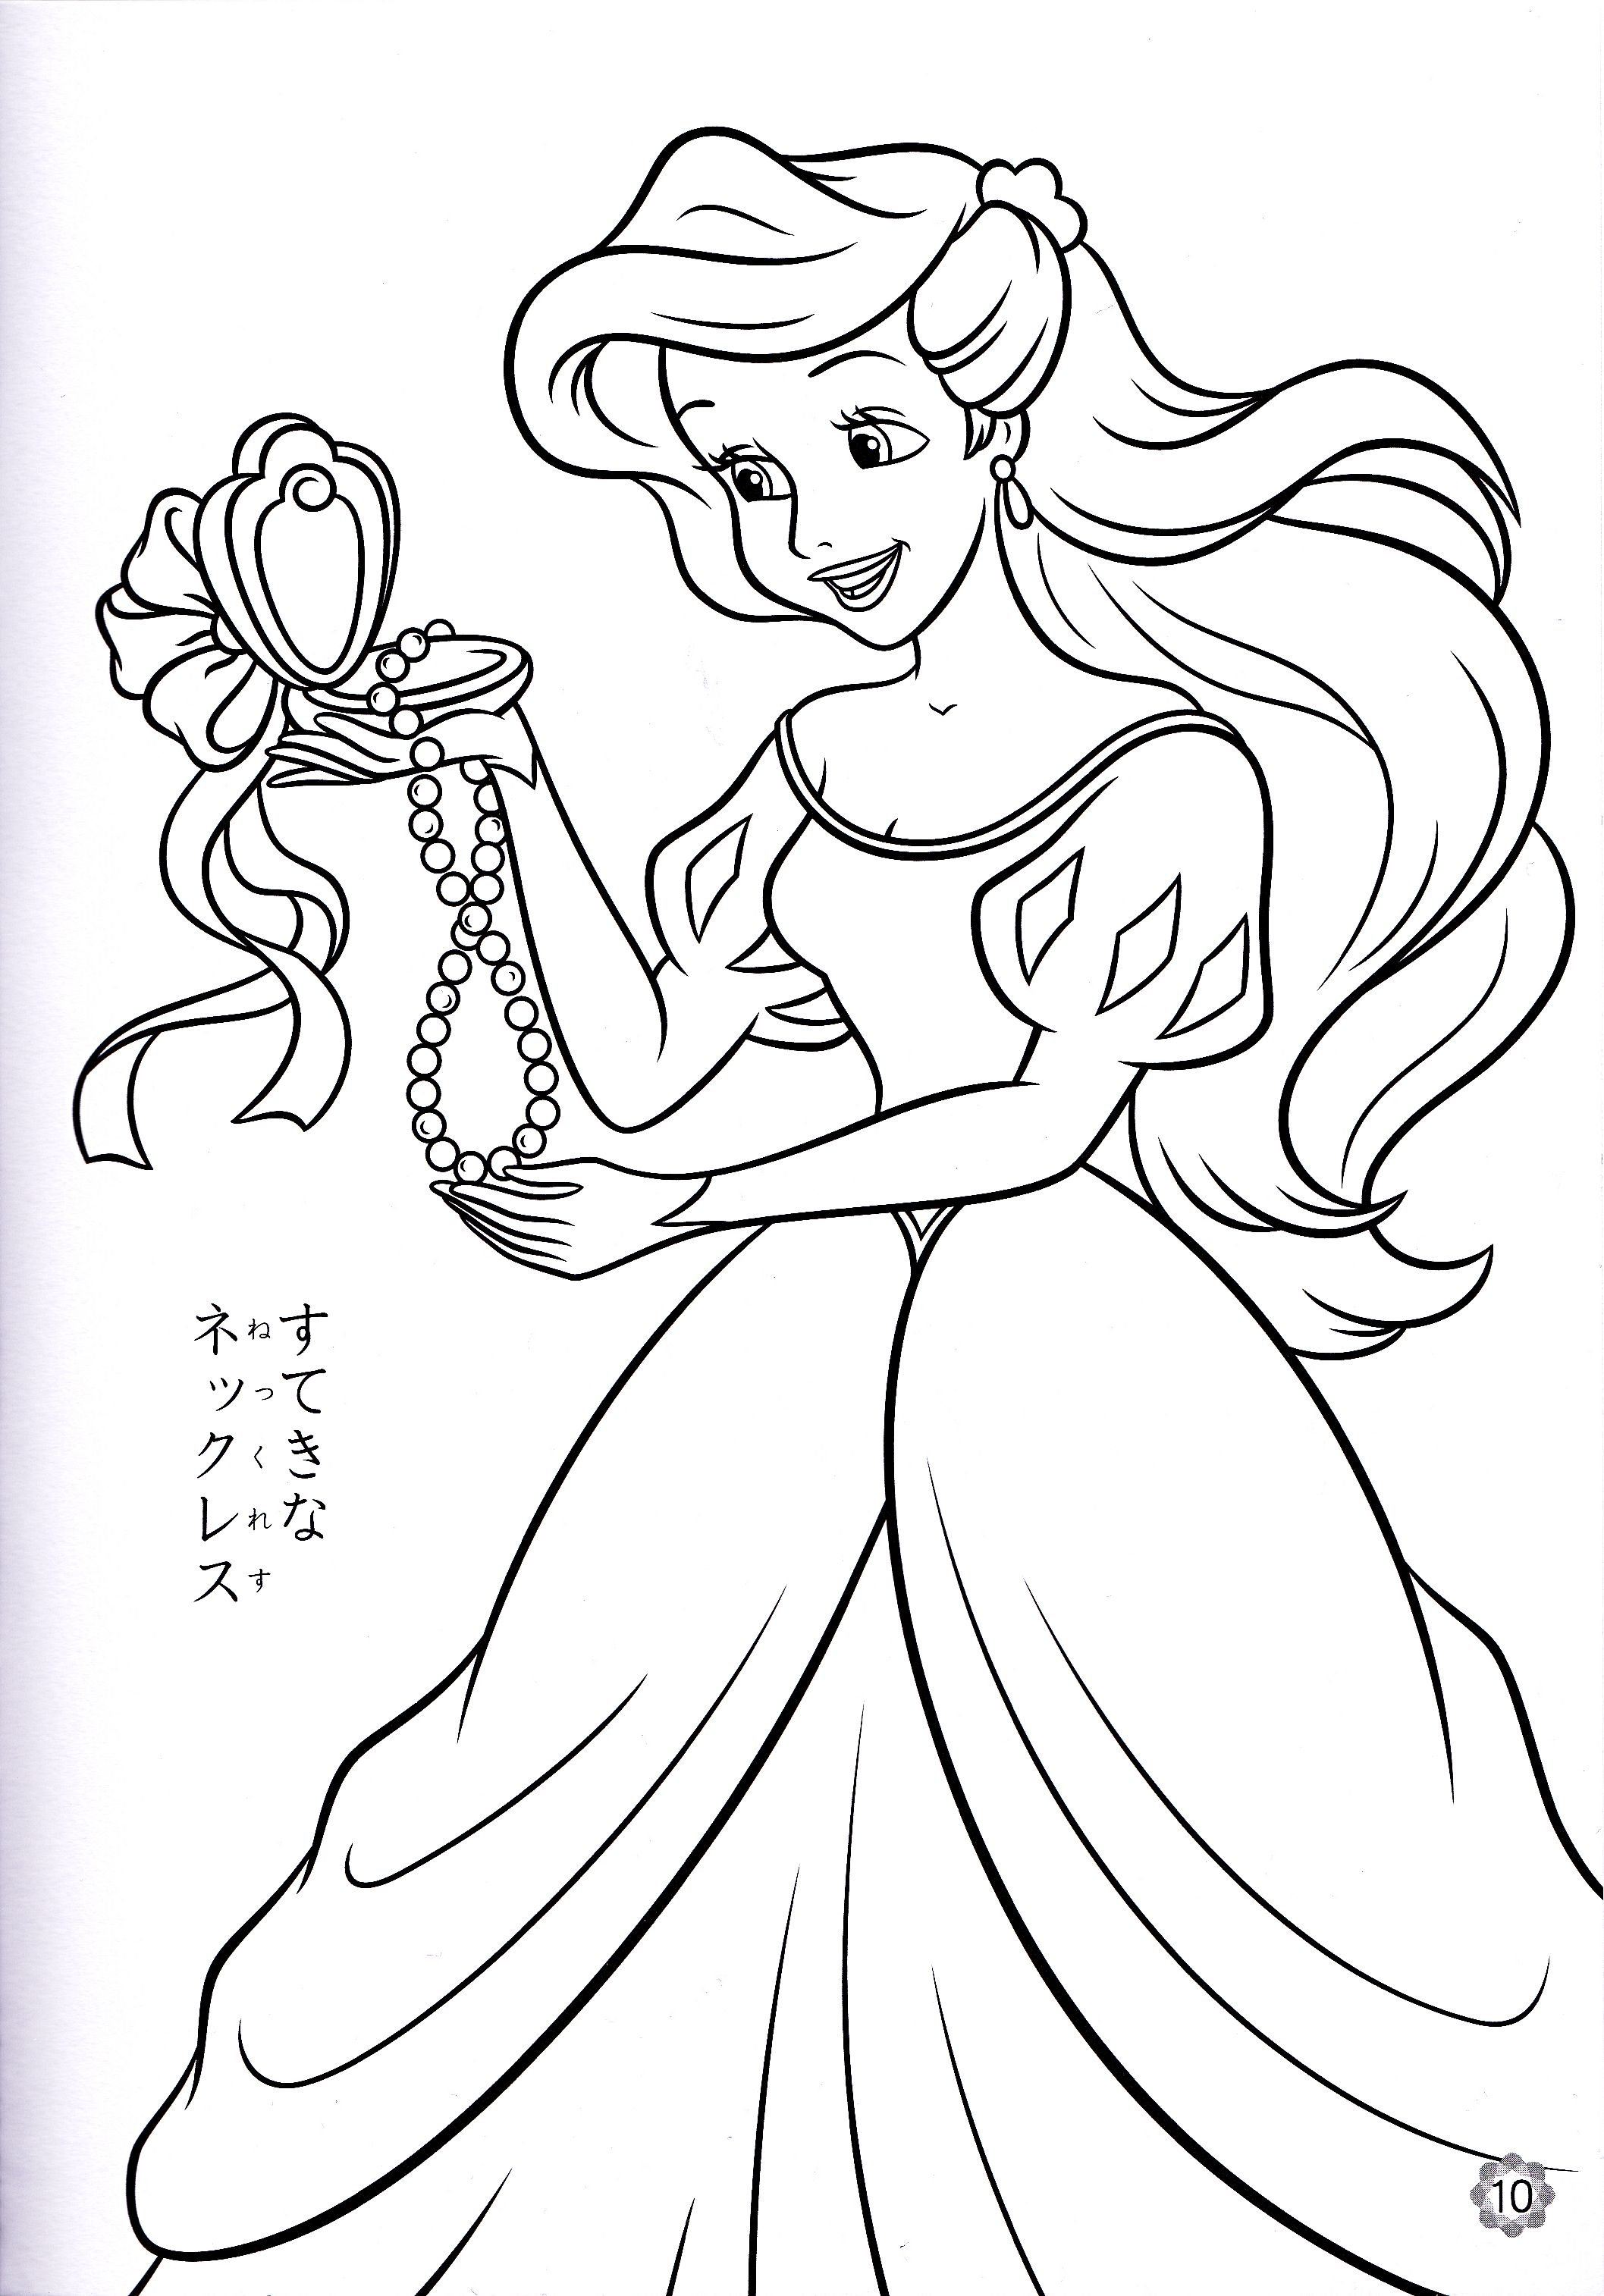 Ariel princess coloring pages free - Princess Ariel Coloring Pages To Print Awesome Coloring Pages